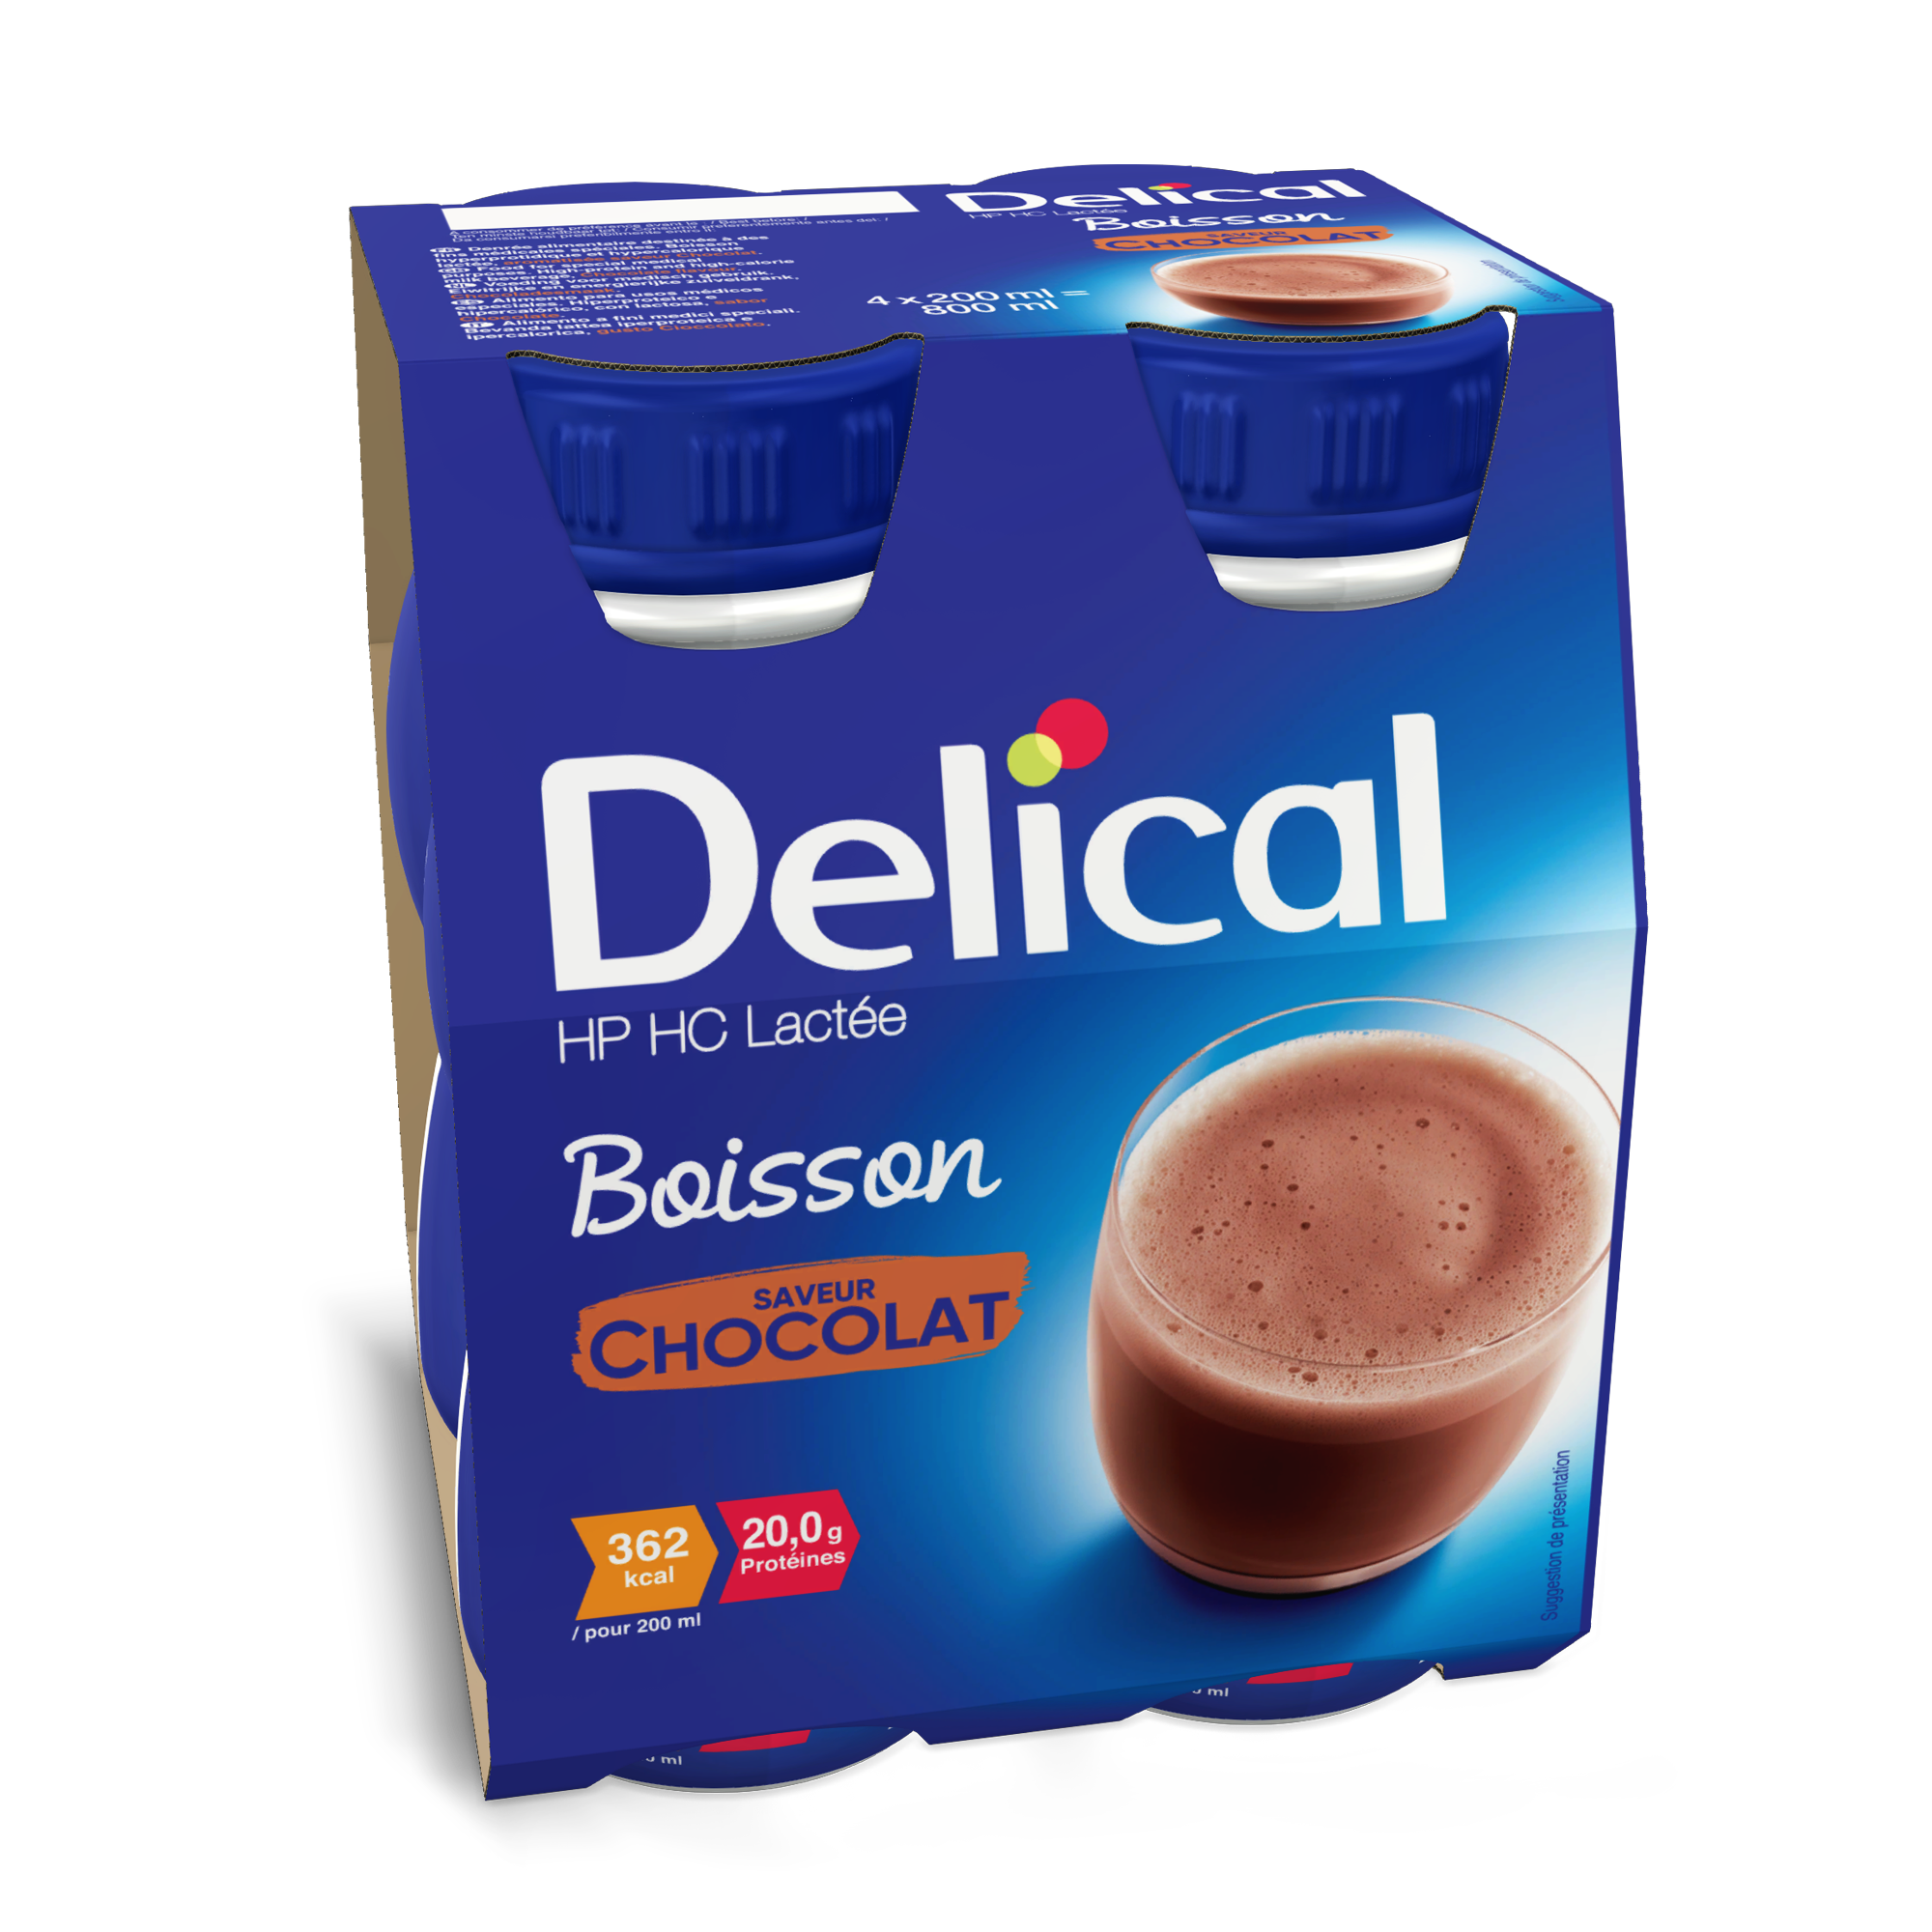 Delical Boisson Hp Hc Lactee Chocolat